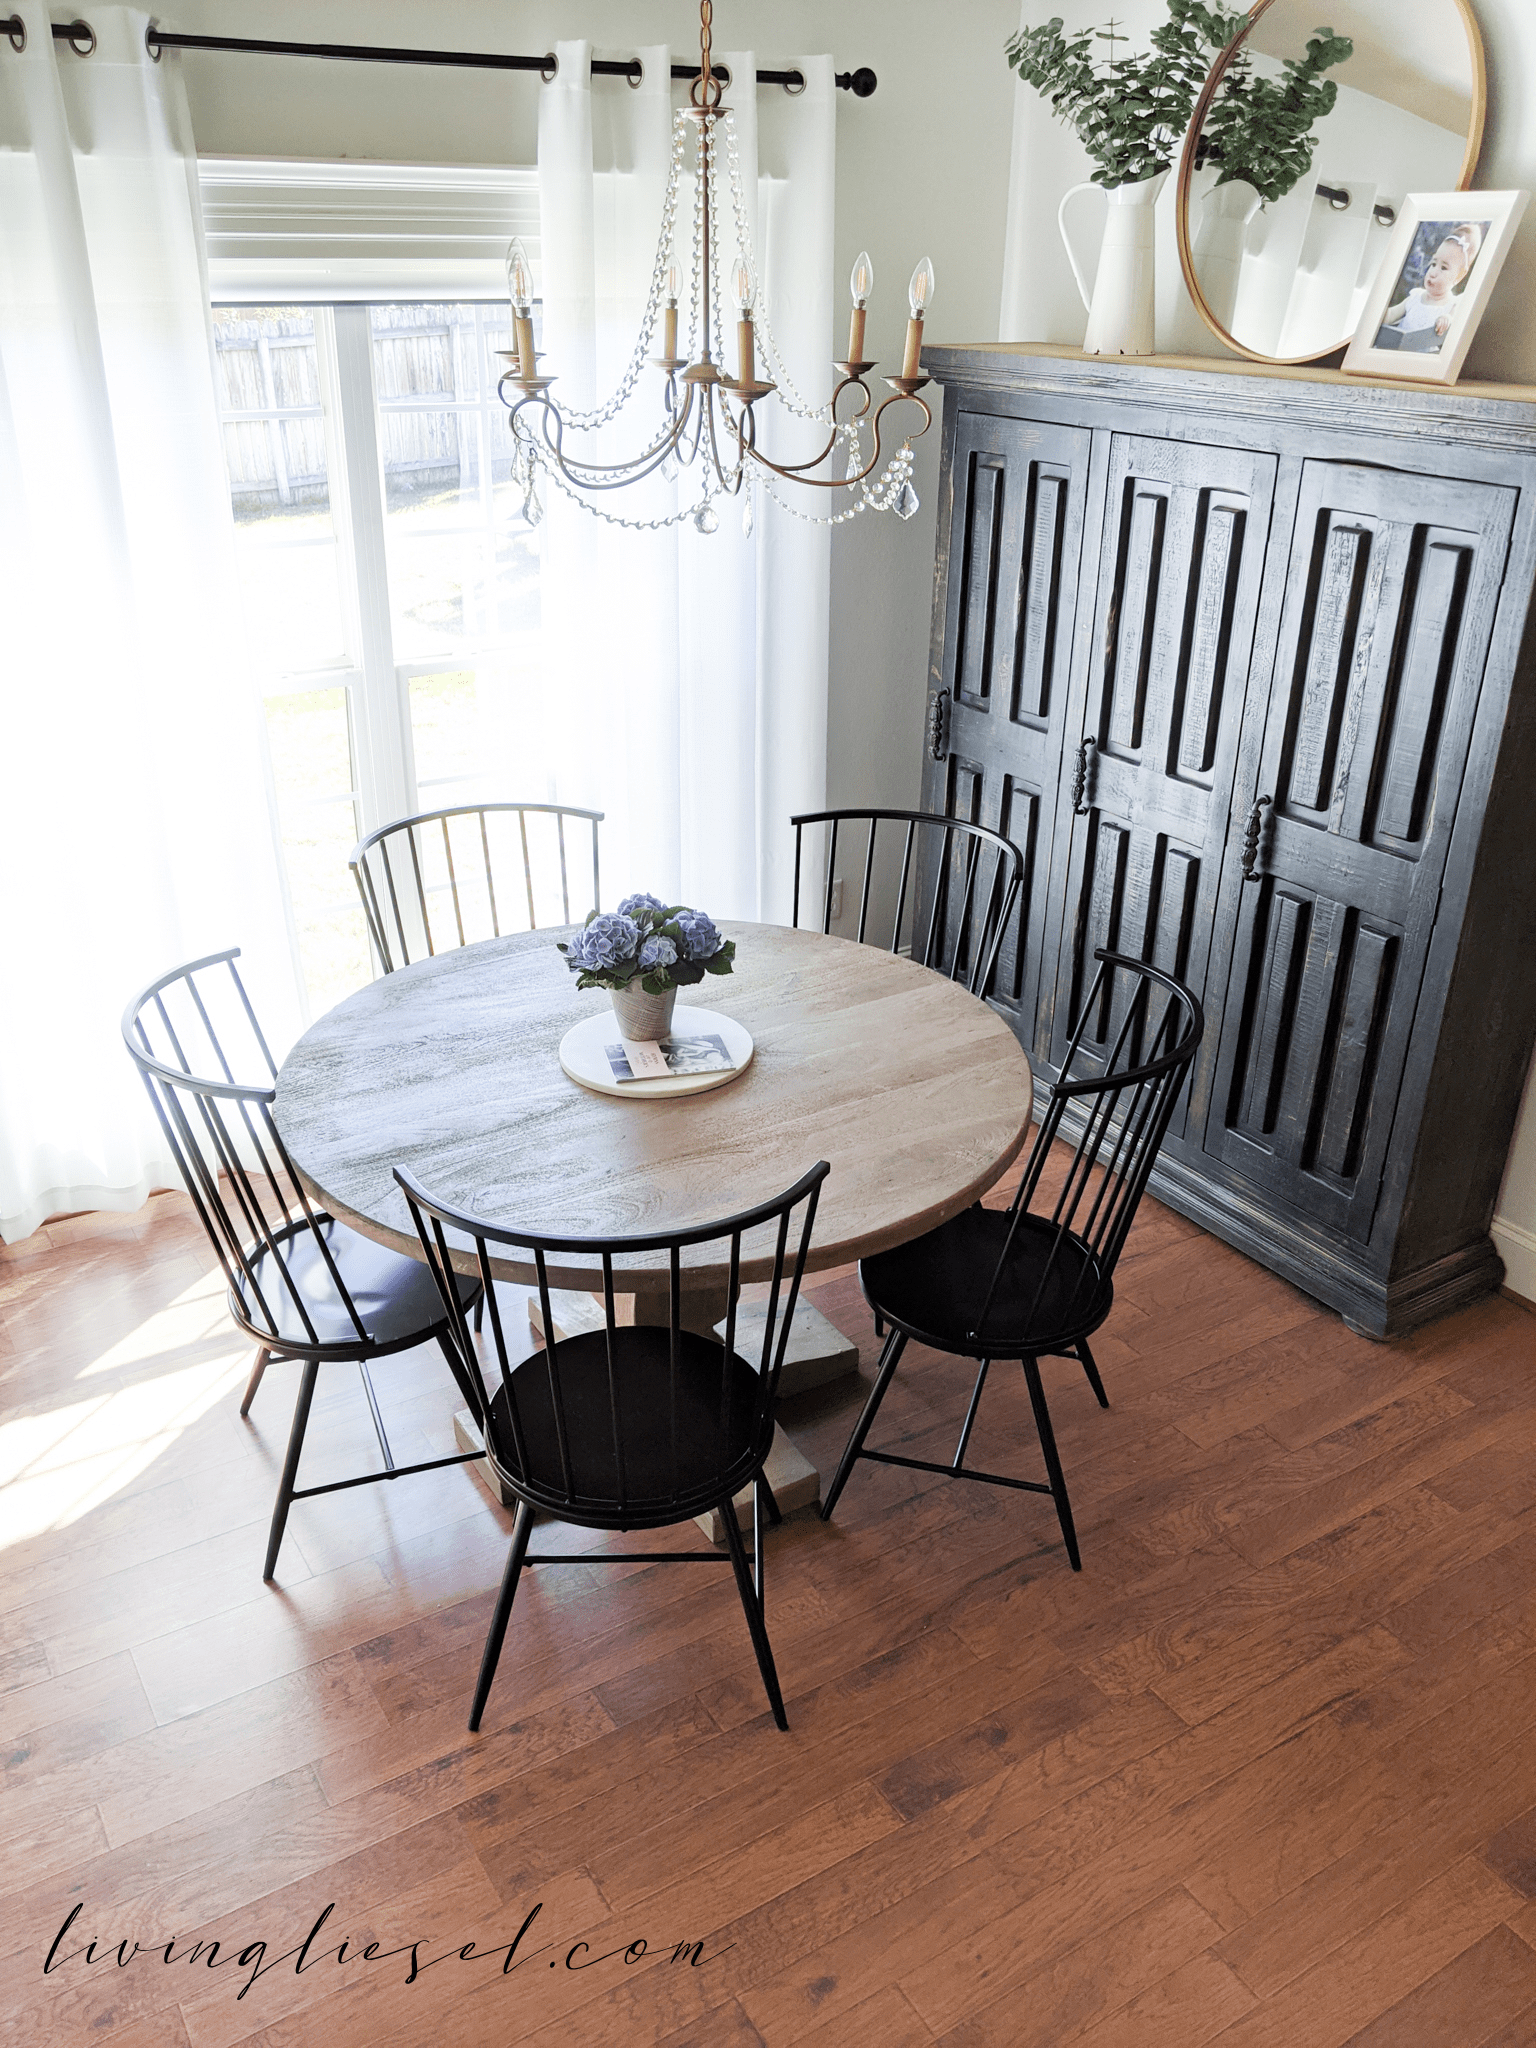 French Country Farmhouse Dining Room -   19 farmhouse decorations for kitchen table ideas